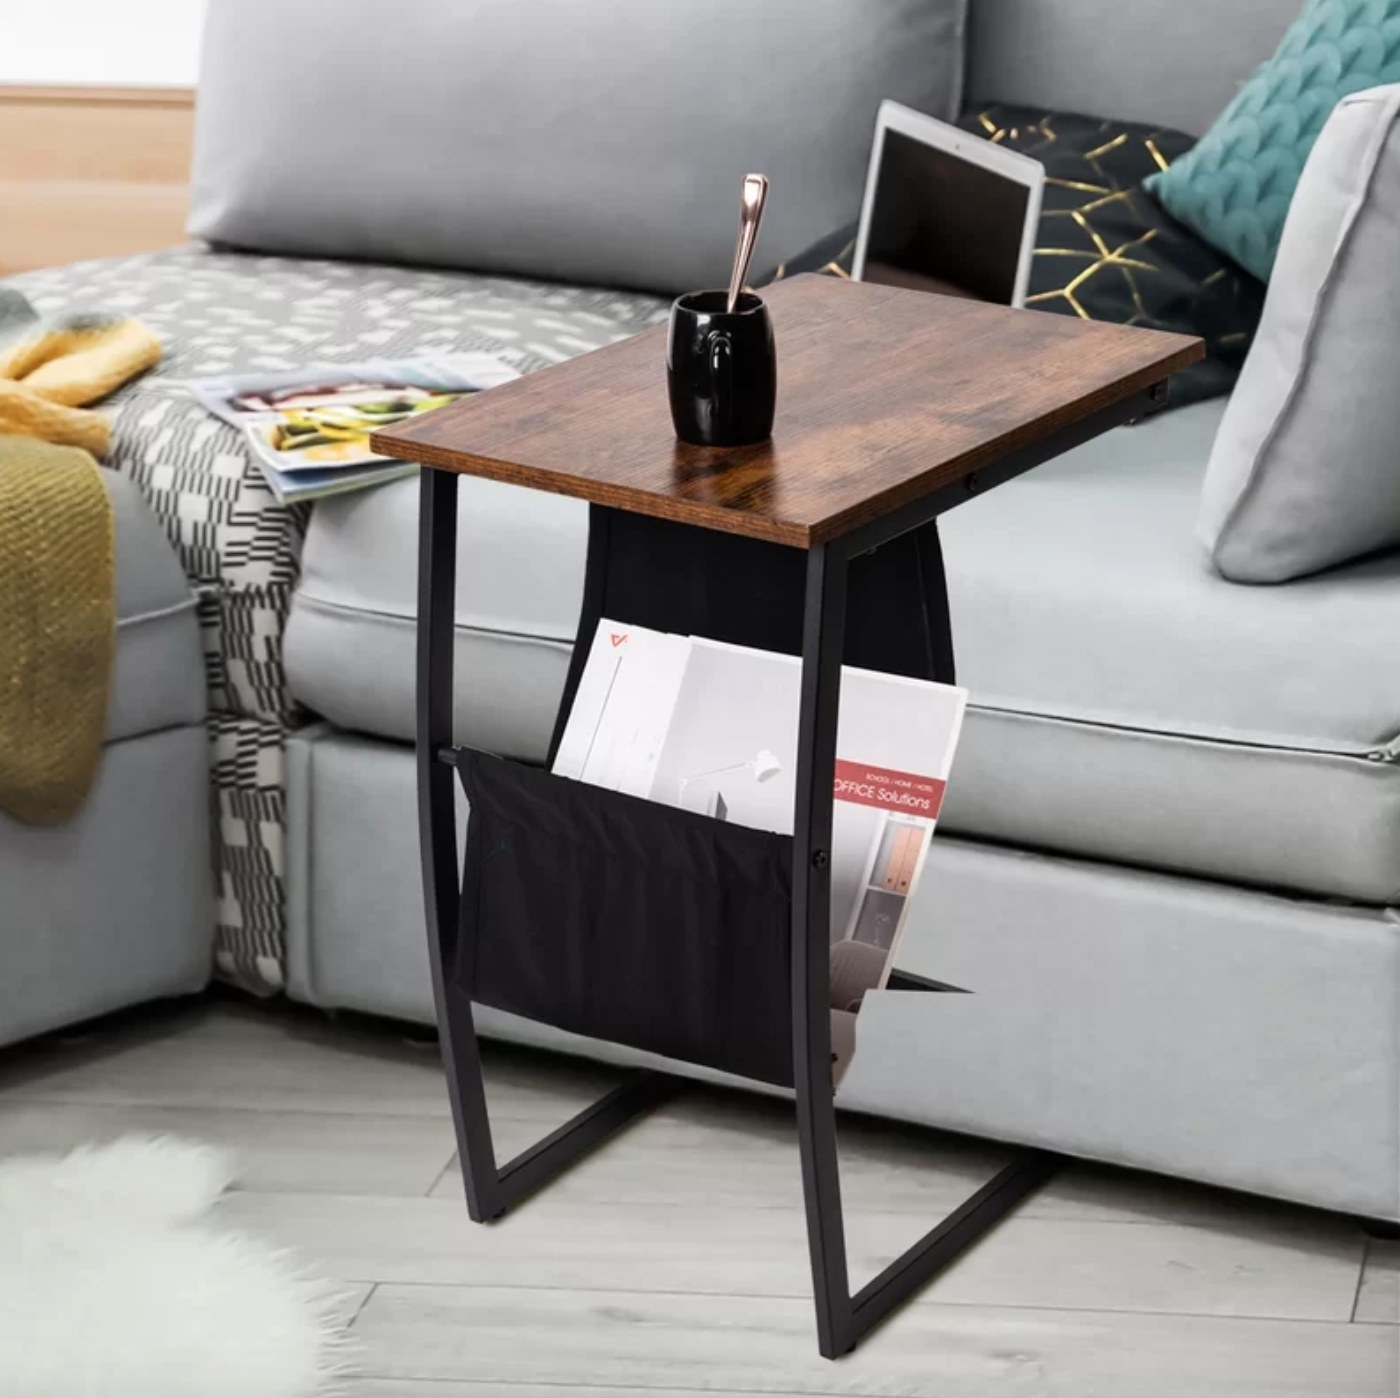 The end table with storage holding magazines